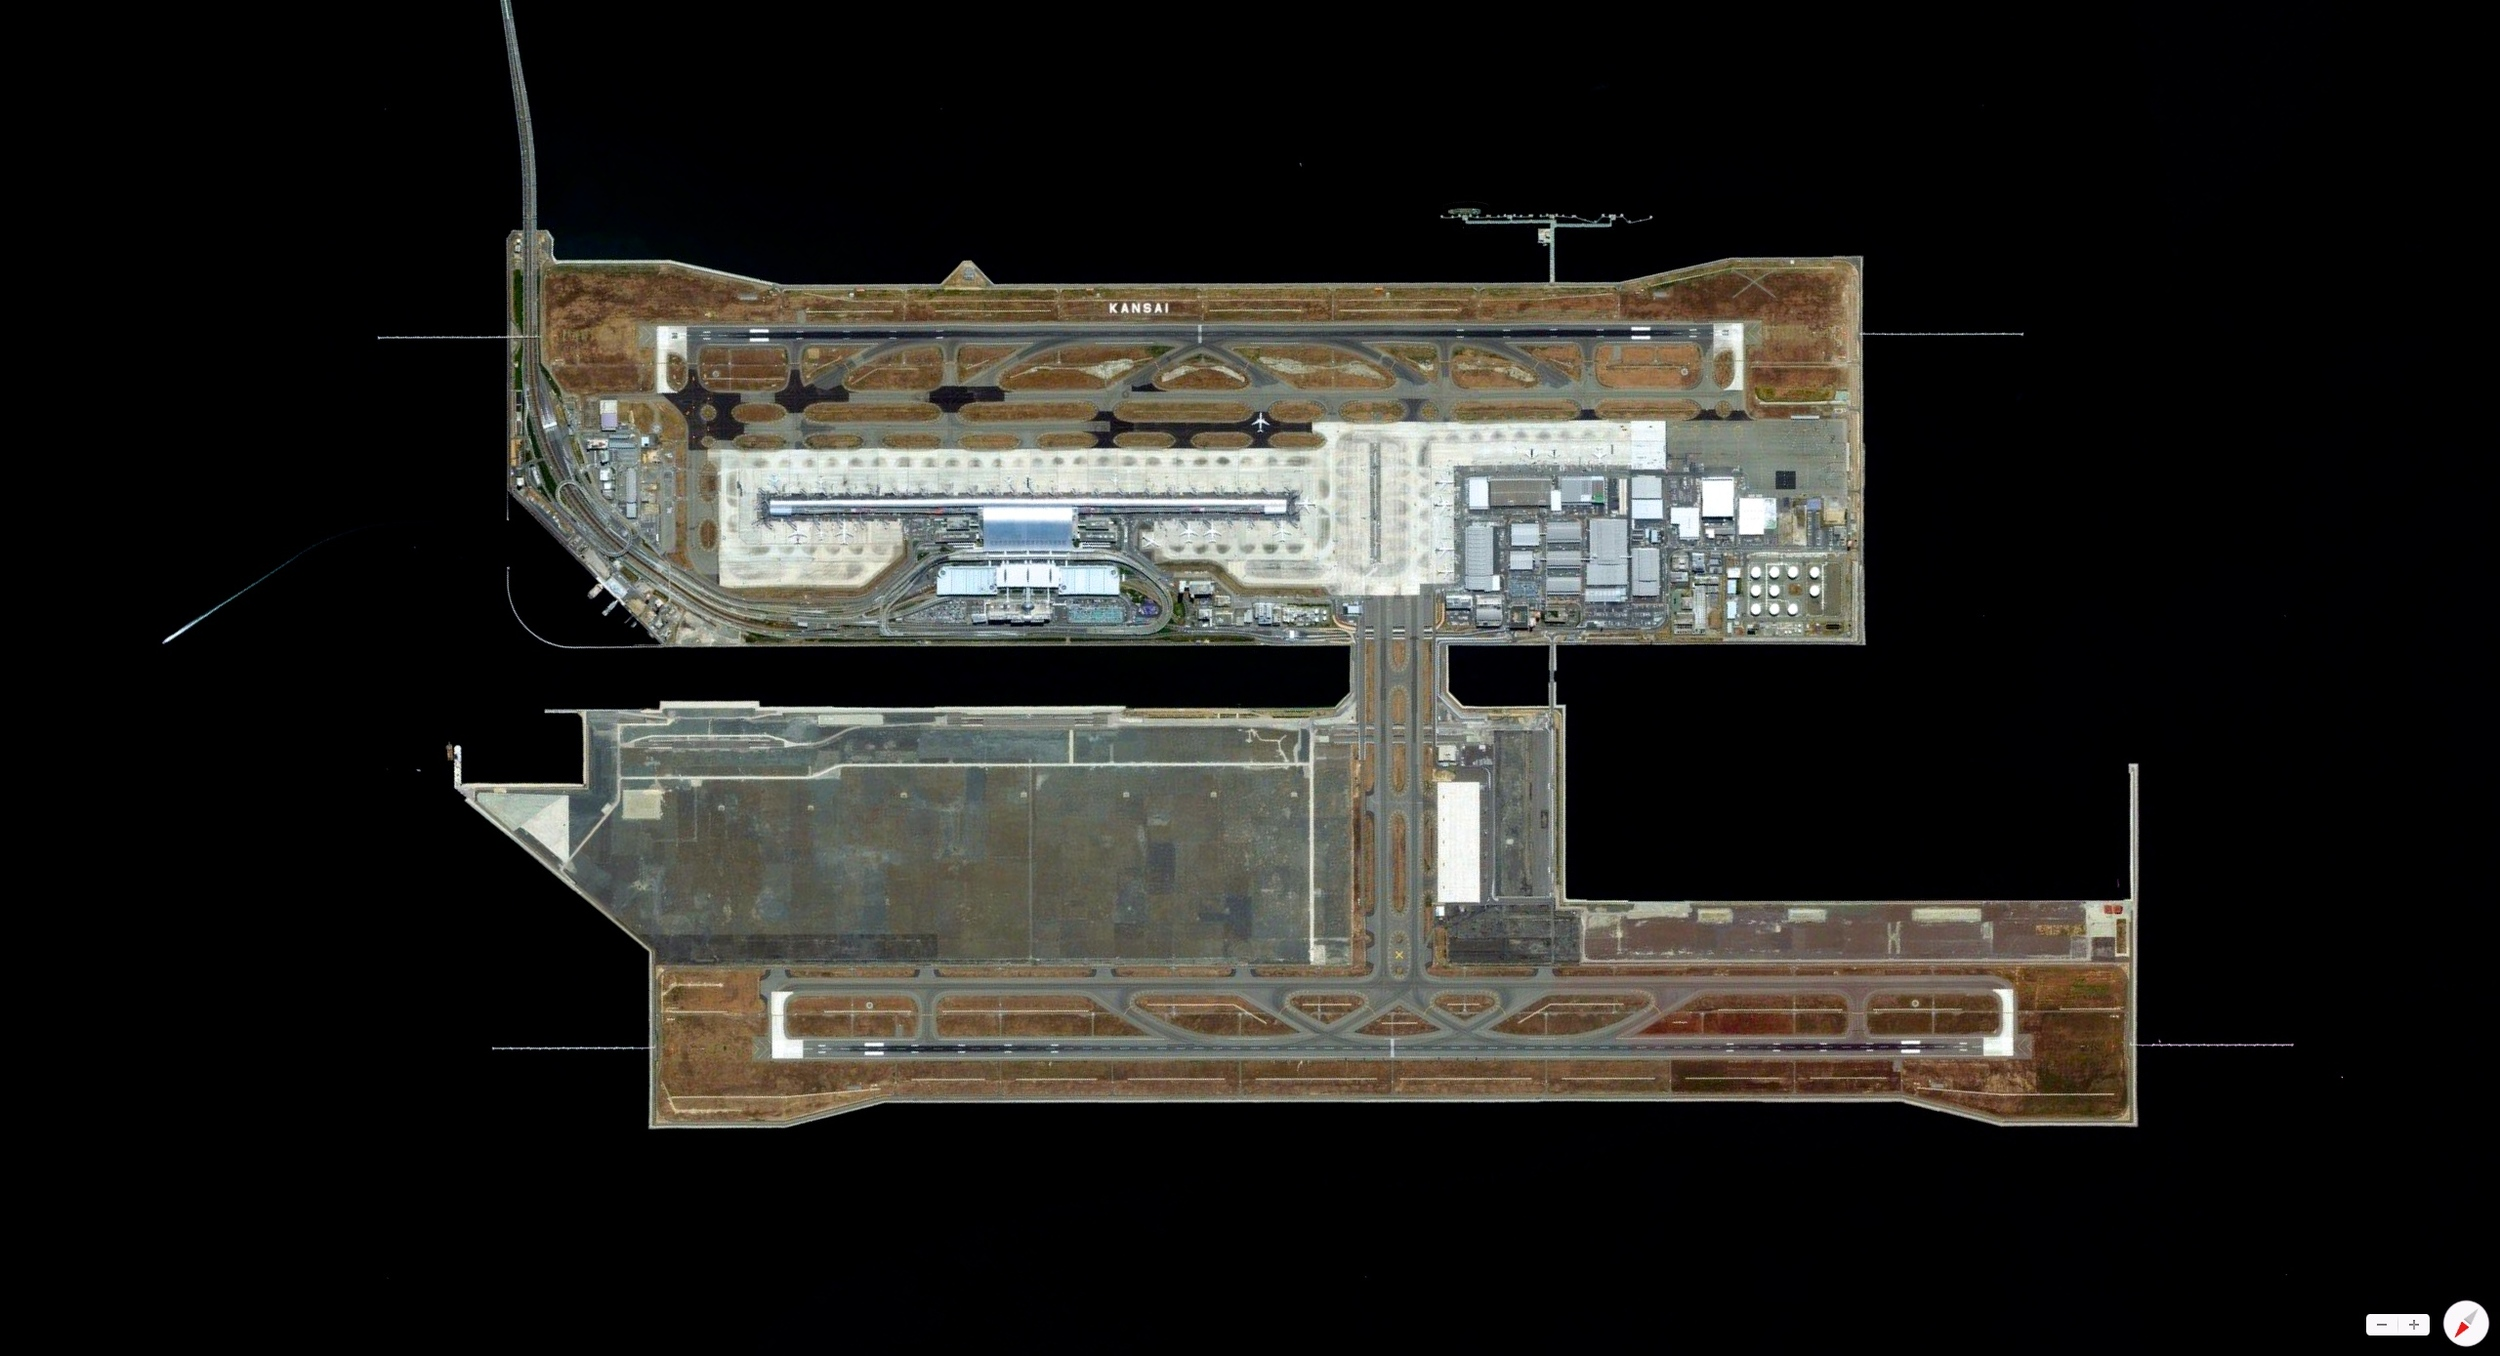 12/26/2013    Kansai International Airport   Osaka Bay, Osaka, Japan   34°26′03″N 135°13′58″E